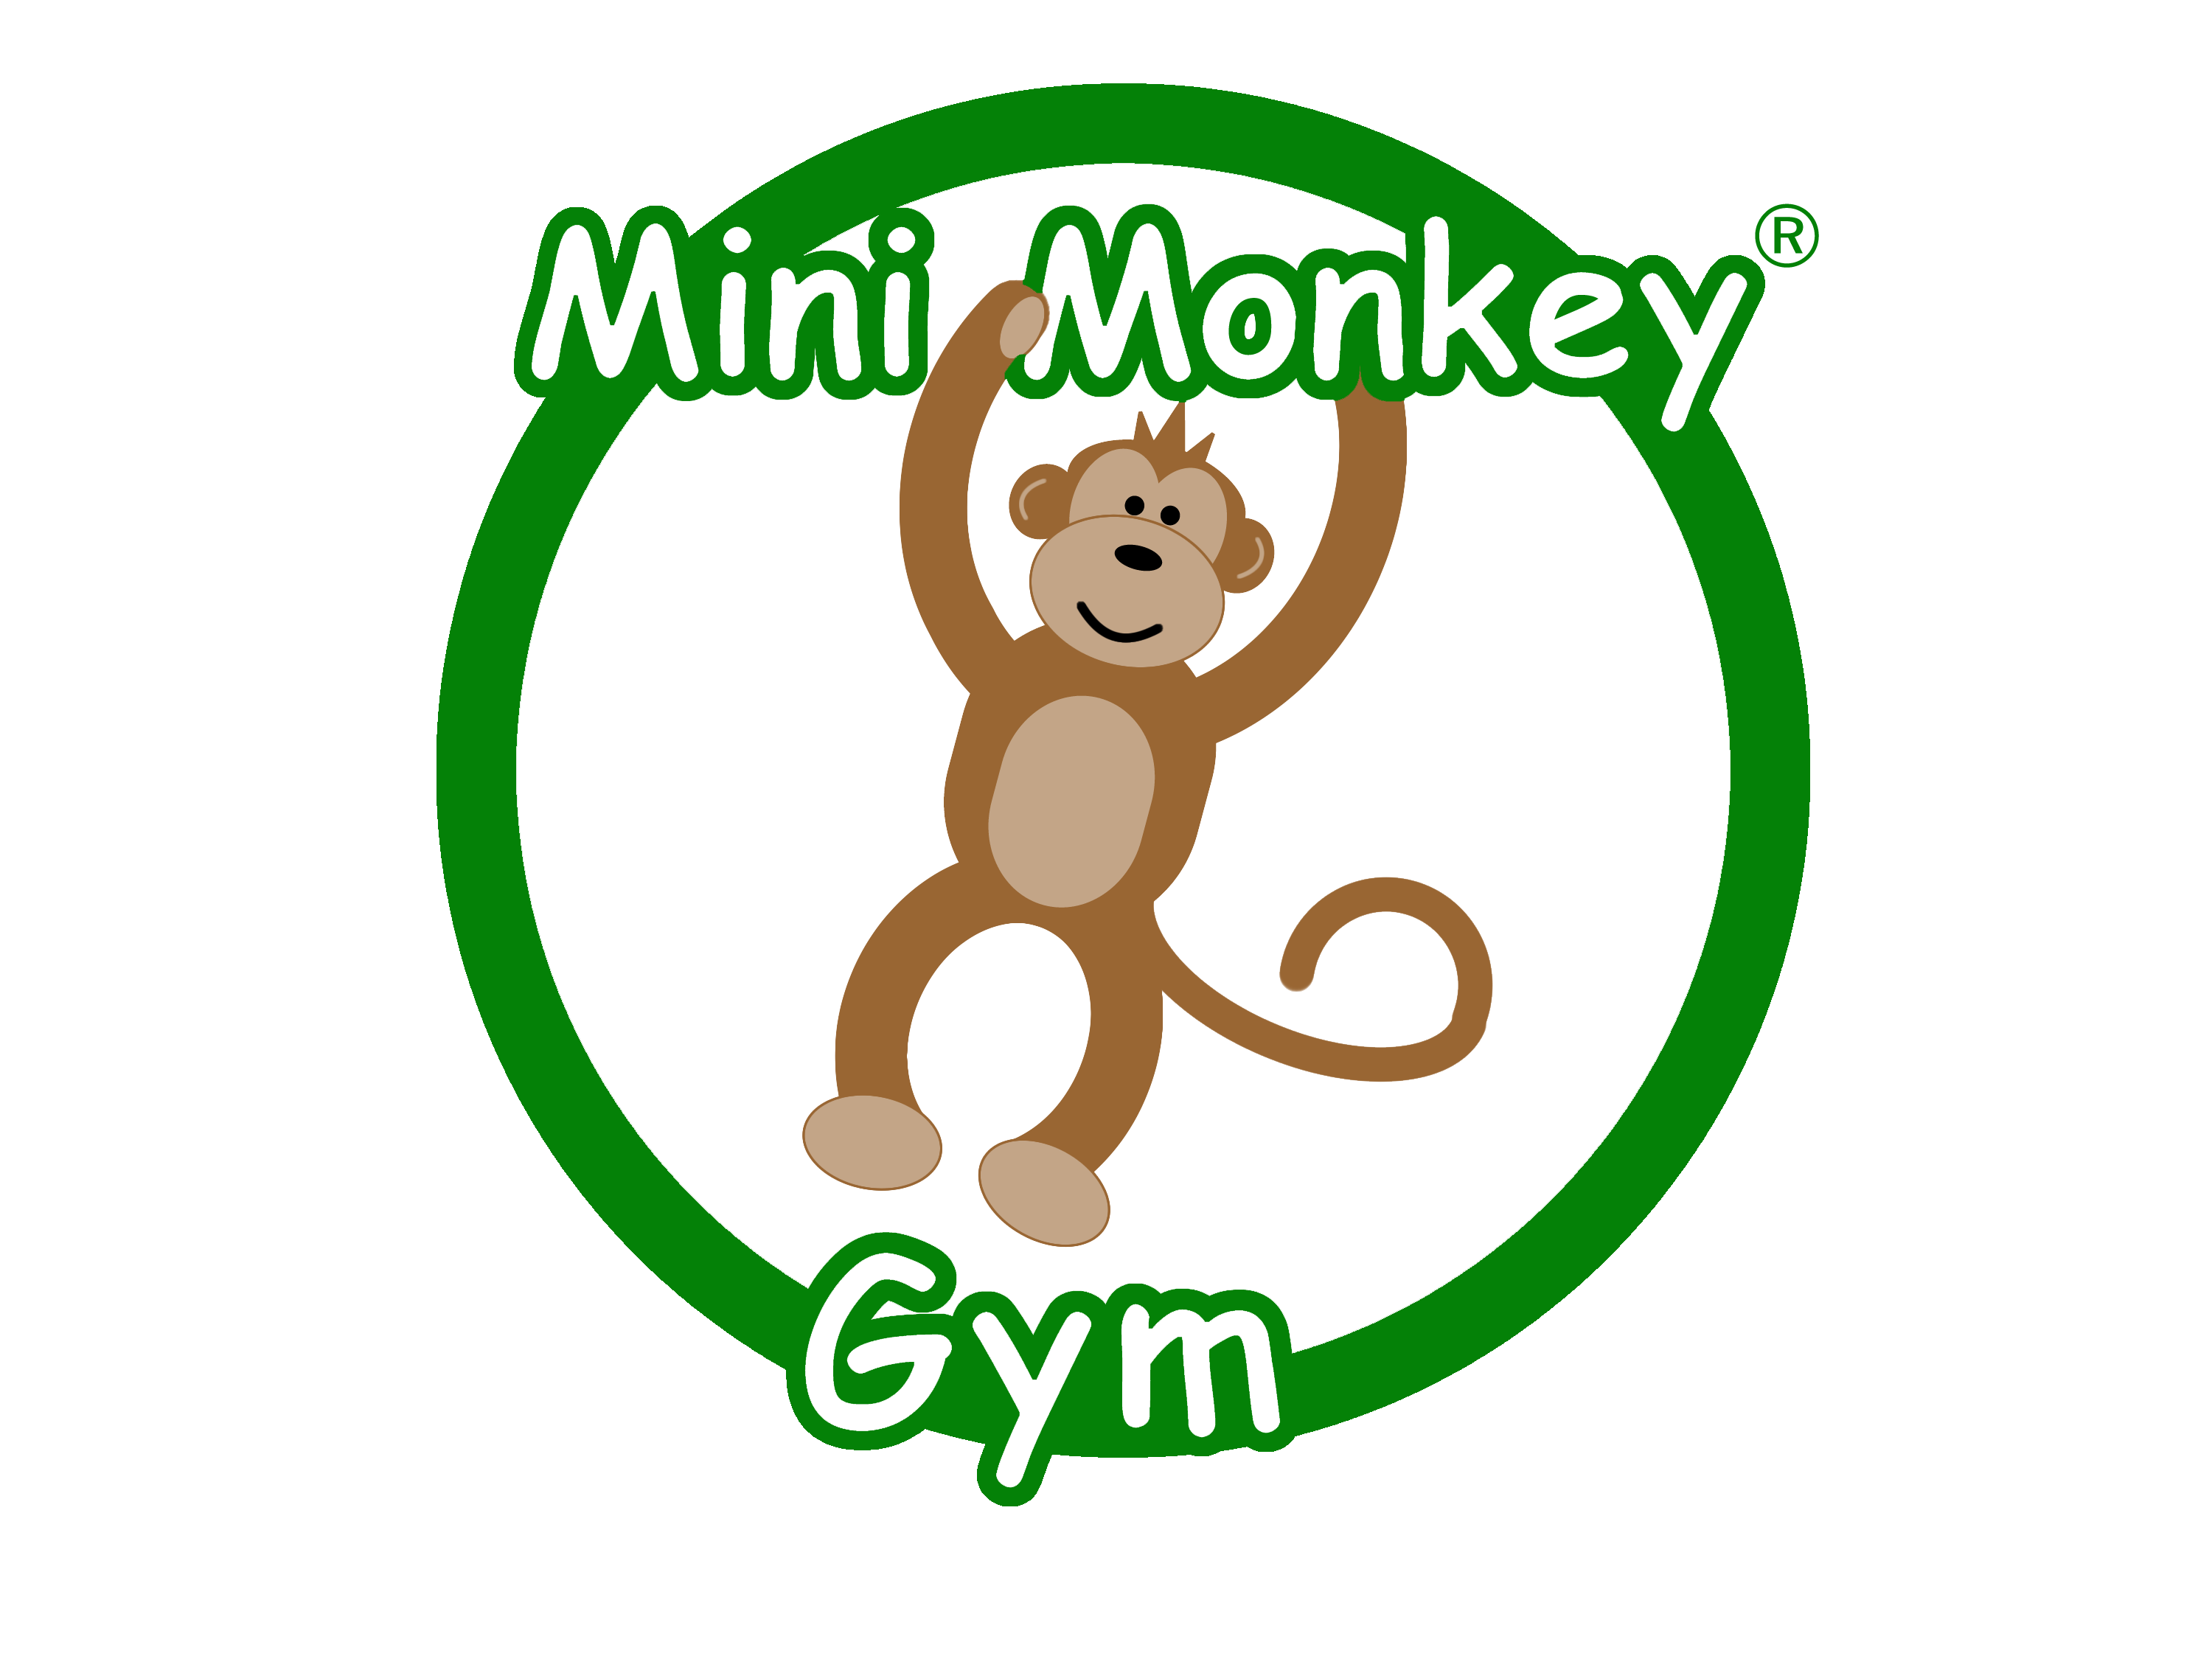 Mini Monkey Gym